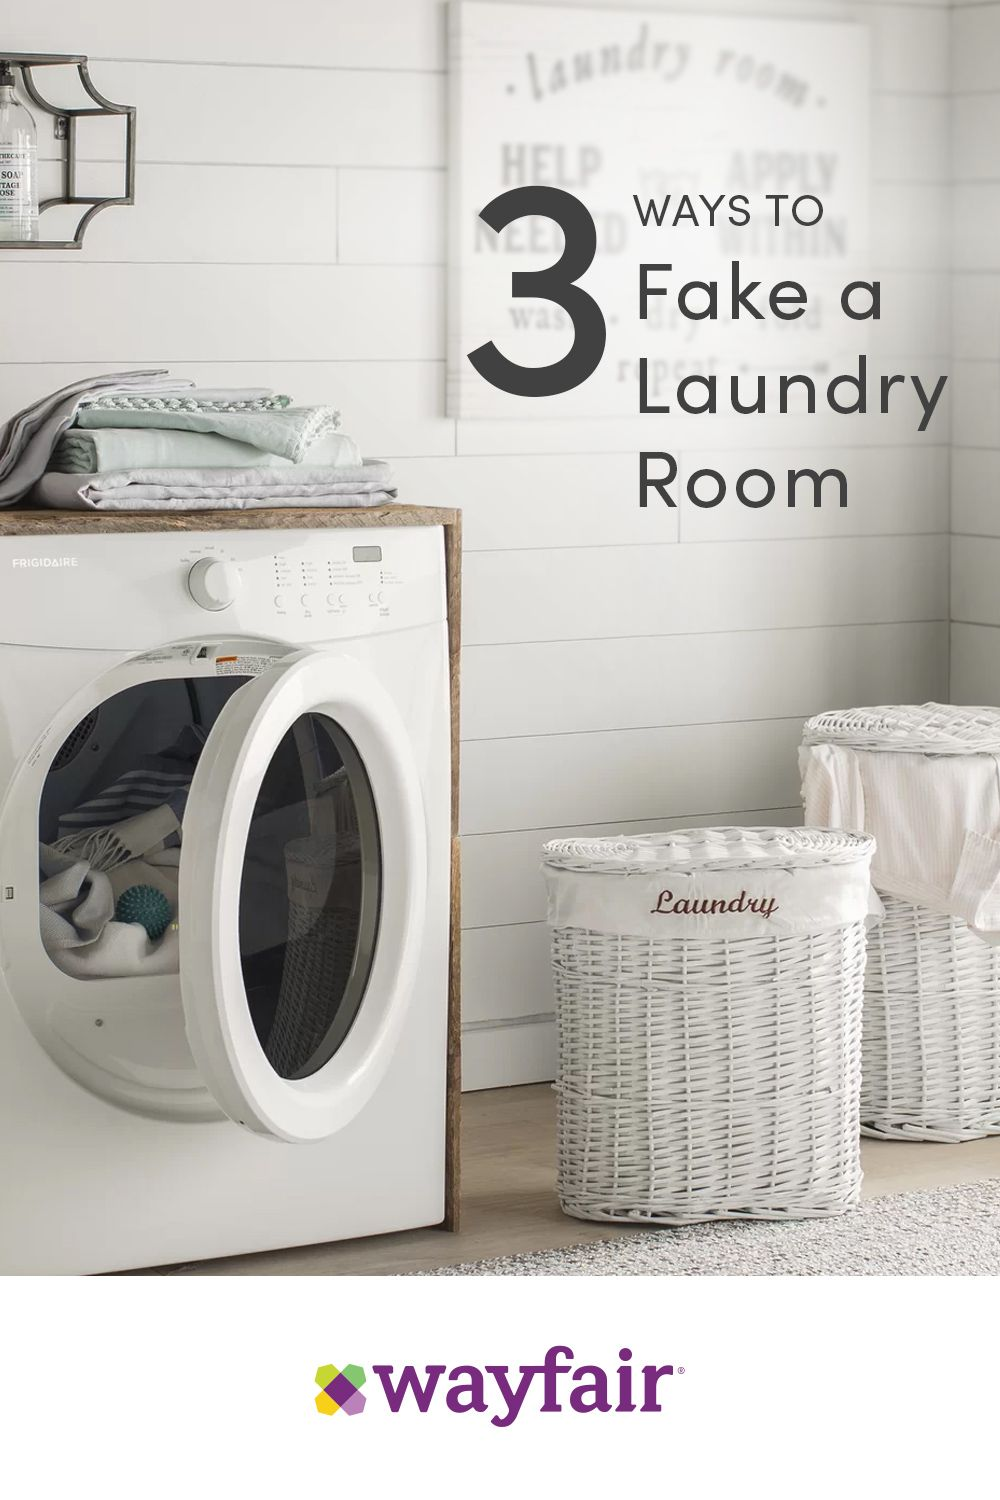 Sign Up For Wayfair To Get Updates On All Things Wayfair Find Dream Home Inspiration G Laundry Room Update Shower Curtain Decor Laundry Room Design